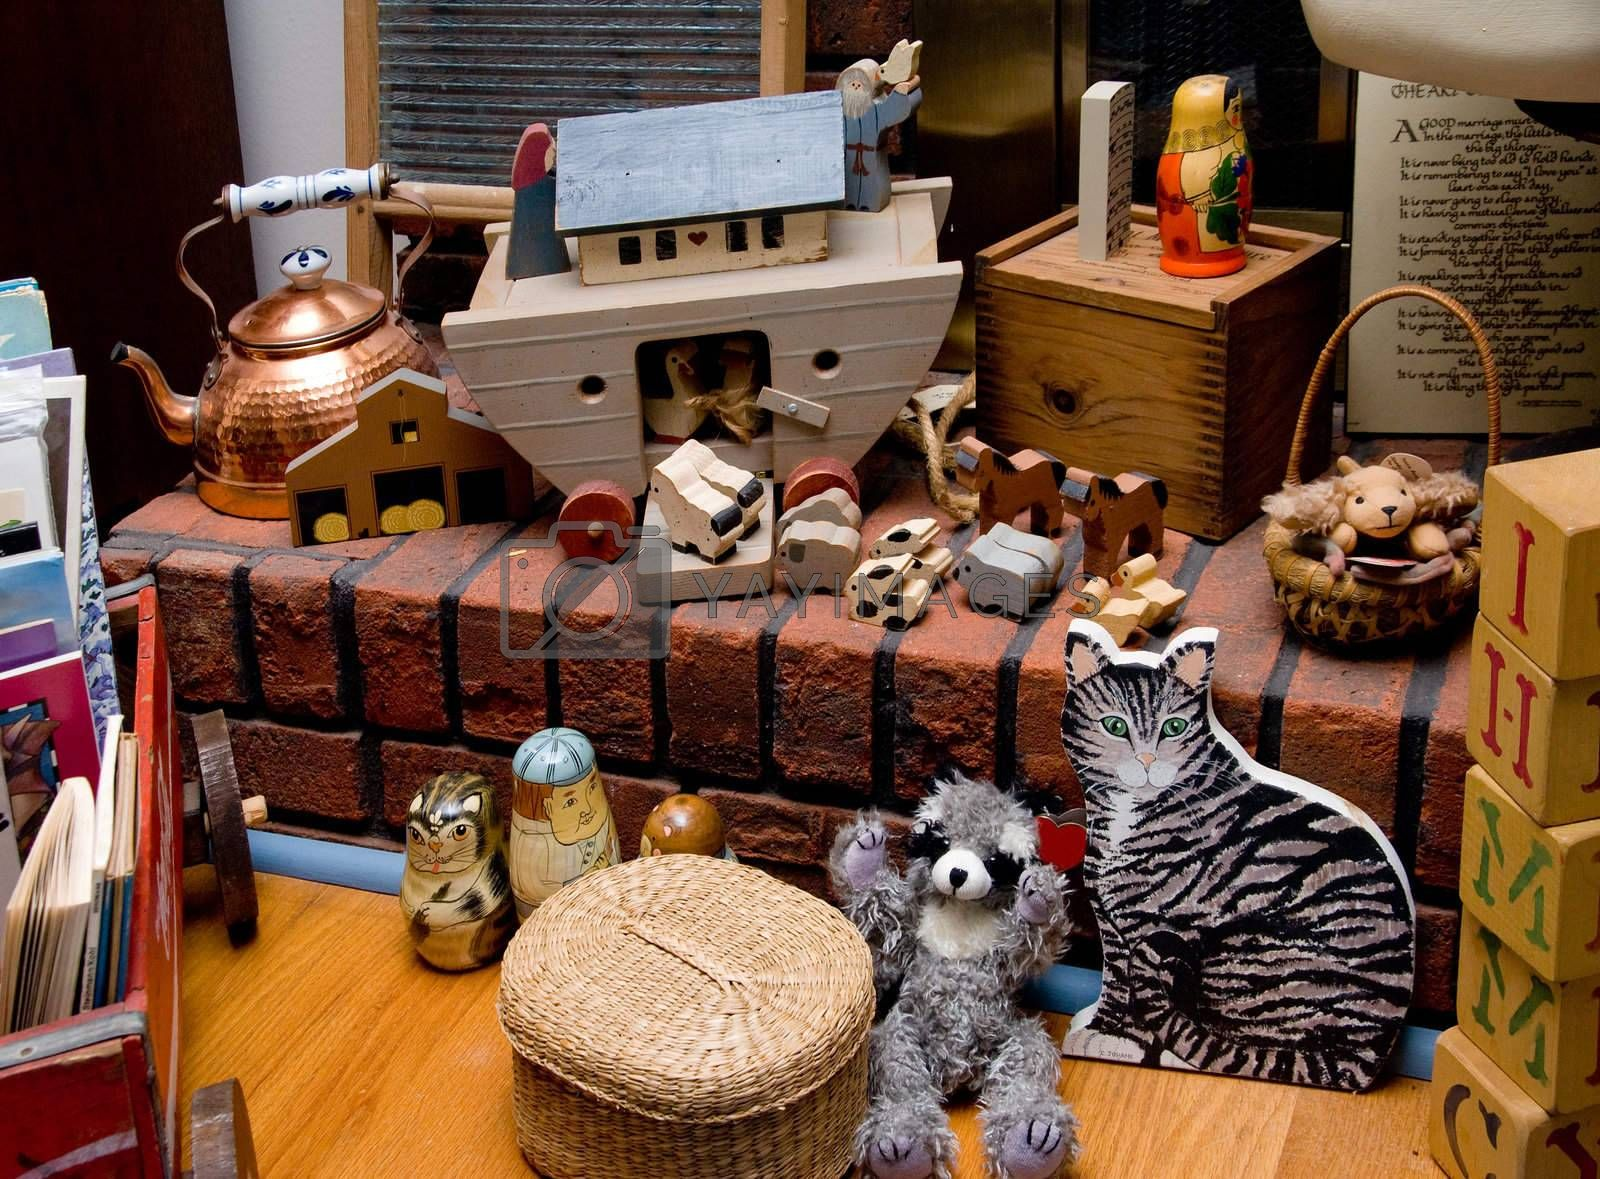 A collection of antique toys on a fireplace hearth.